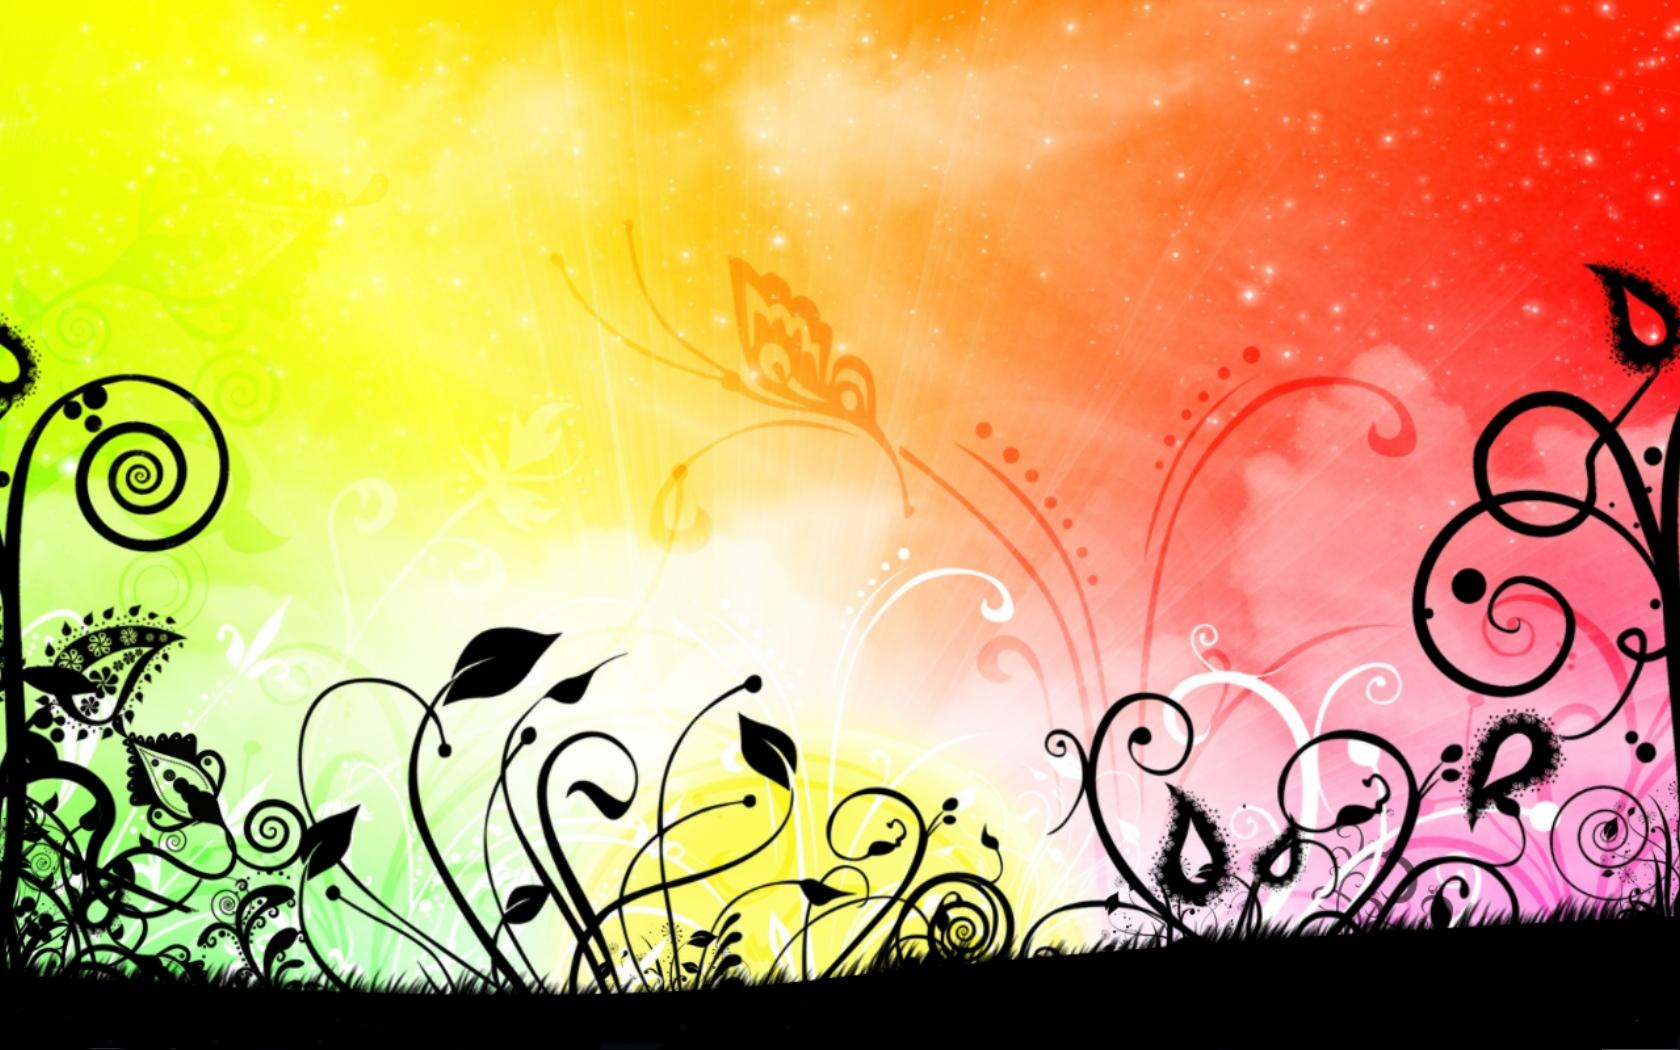 Rainbow Flowers PPT Background Background for Powerpoint Program